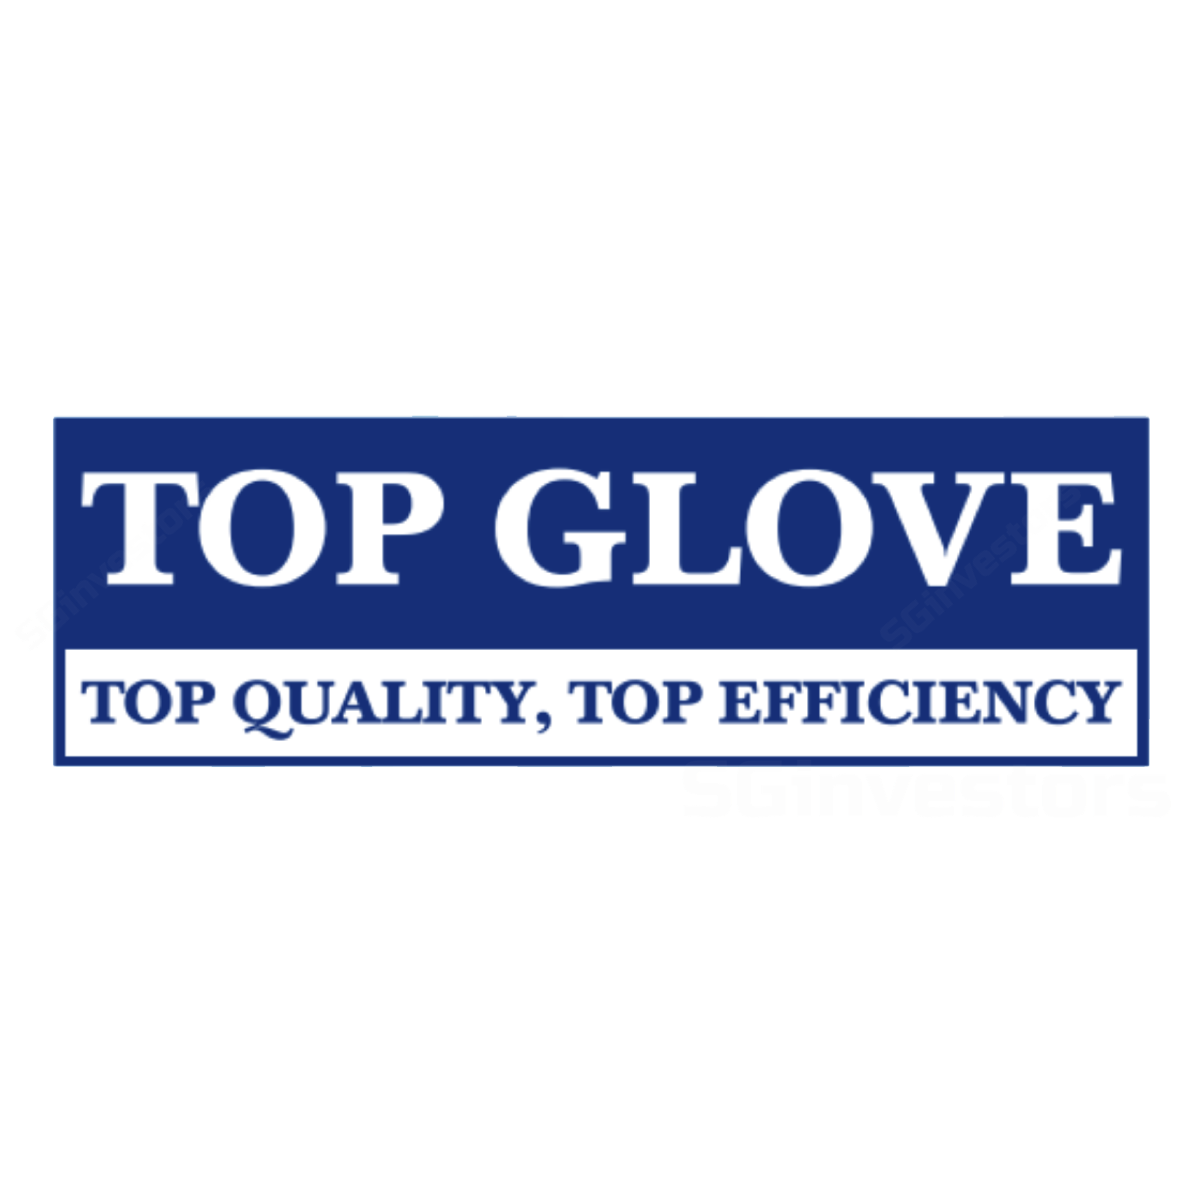 Top Glove Corporation (TOPG MK) - DBS Vickers 2017-12-20: Earnings Boosted By Higher Volume